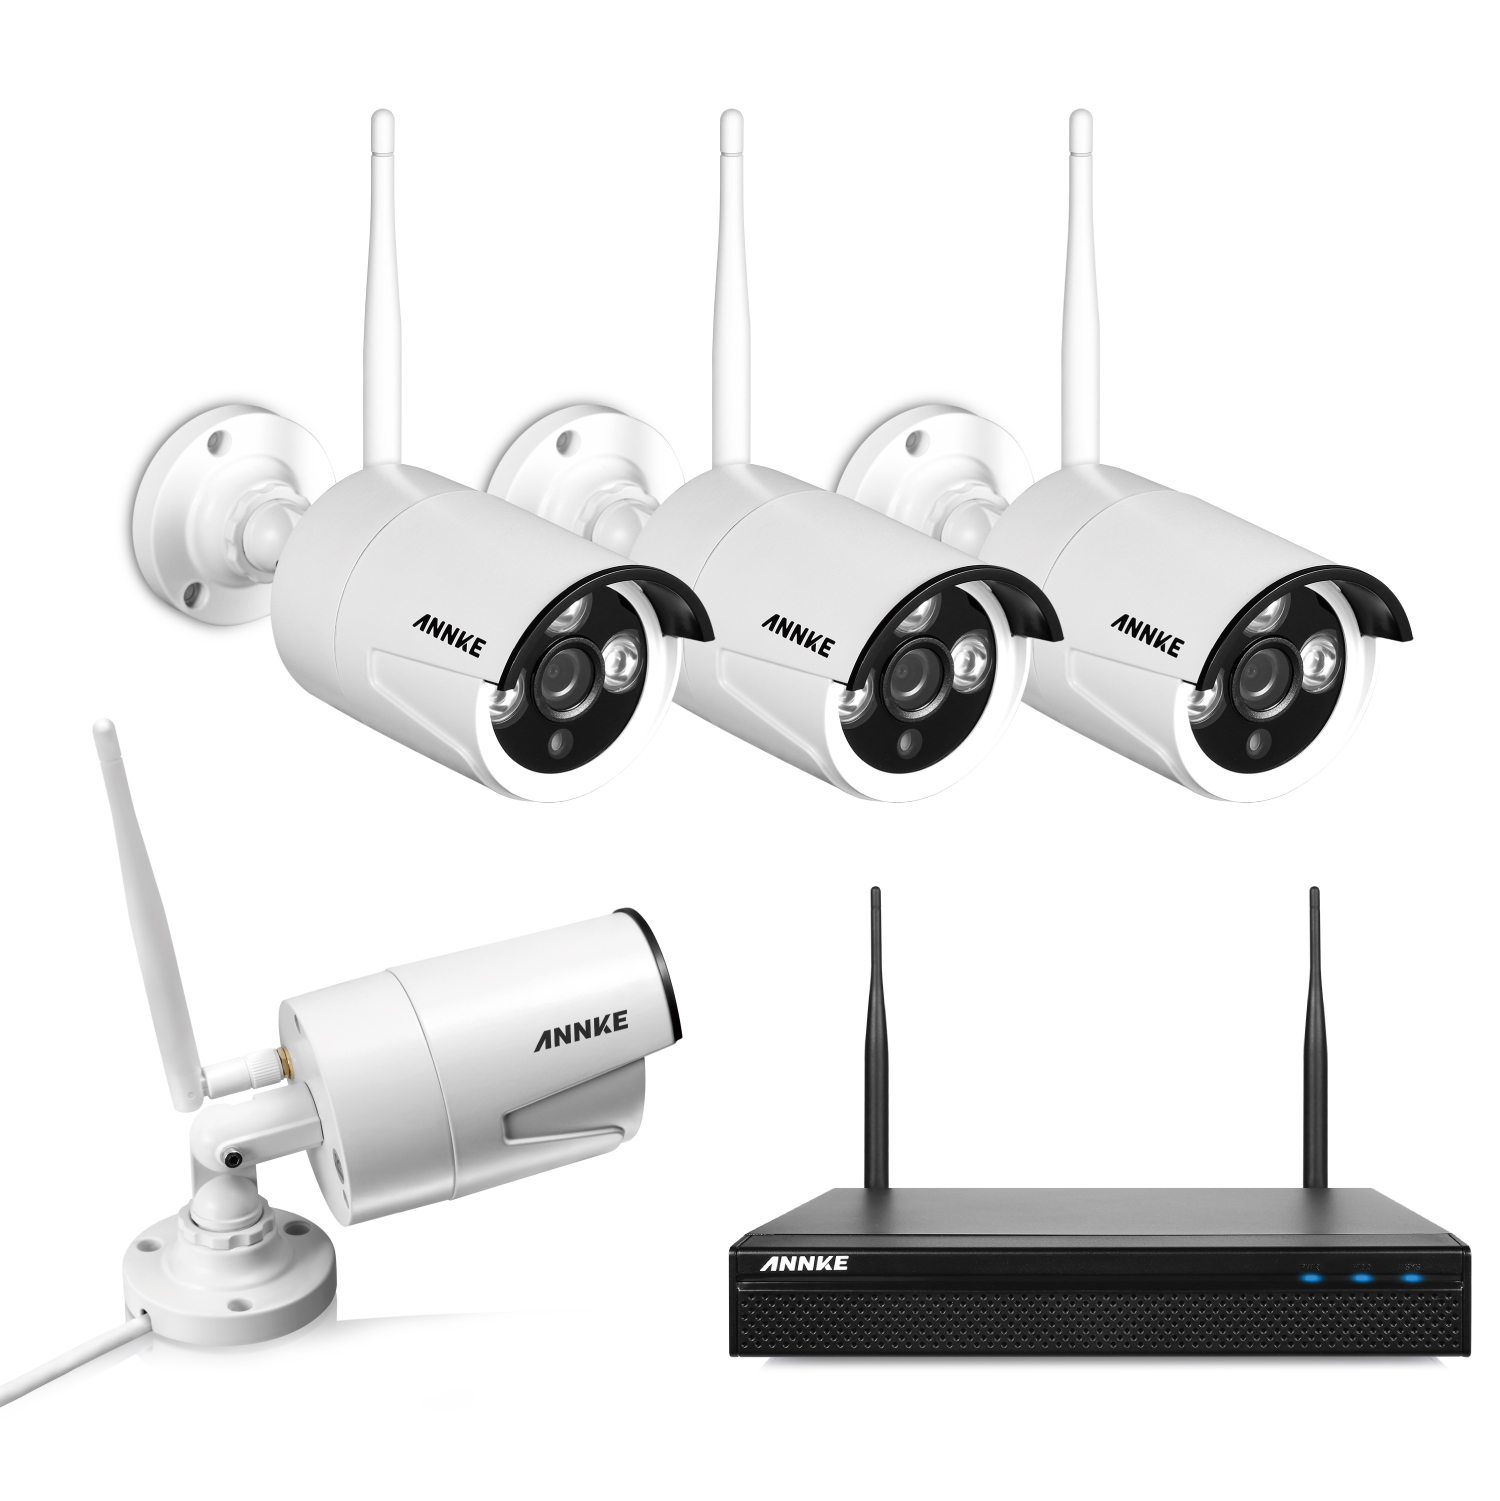 Annke CCTV 960P Wireless Security Camera System, 4CH WIFI NVR with 4x 1.3MP Surveillance Cameras, Quick Remote view, 1280*960 High Resolution with Superior Night vision With No Hard Drive Disk